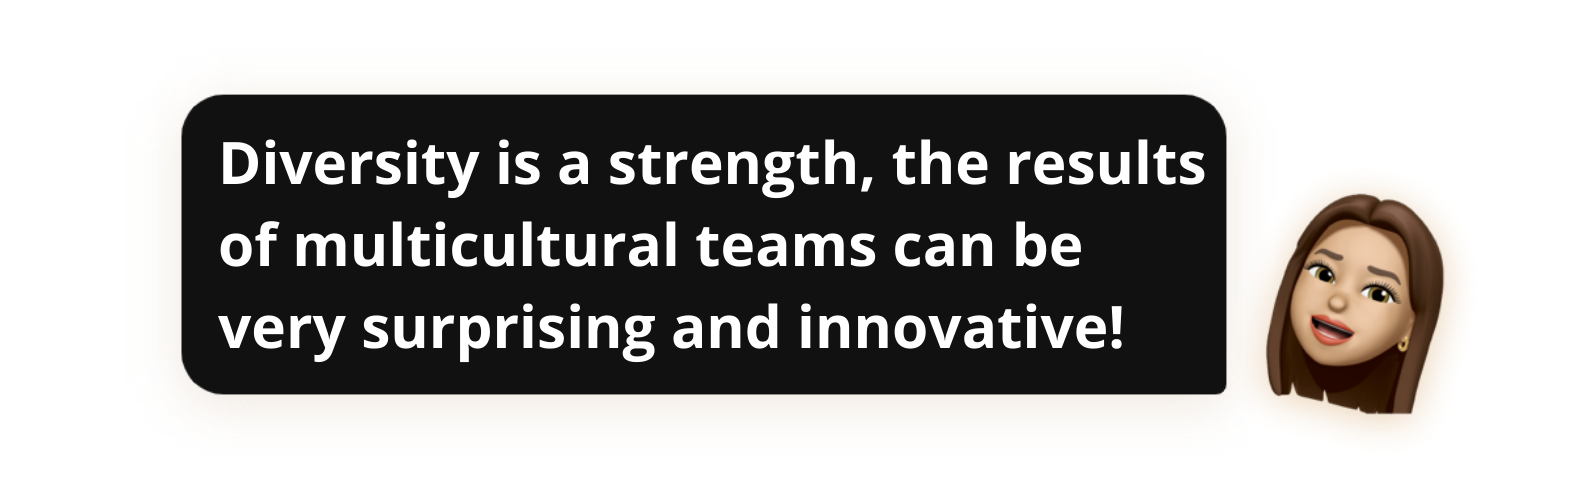 Diversity is a strength, the results of multicultural teams can be very surprising and innovative! - Popwork